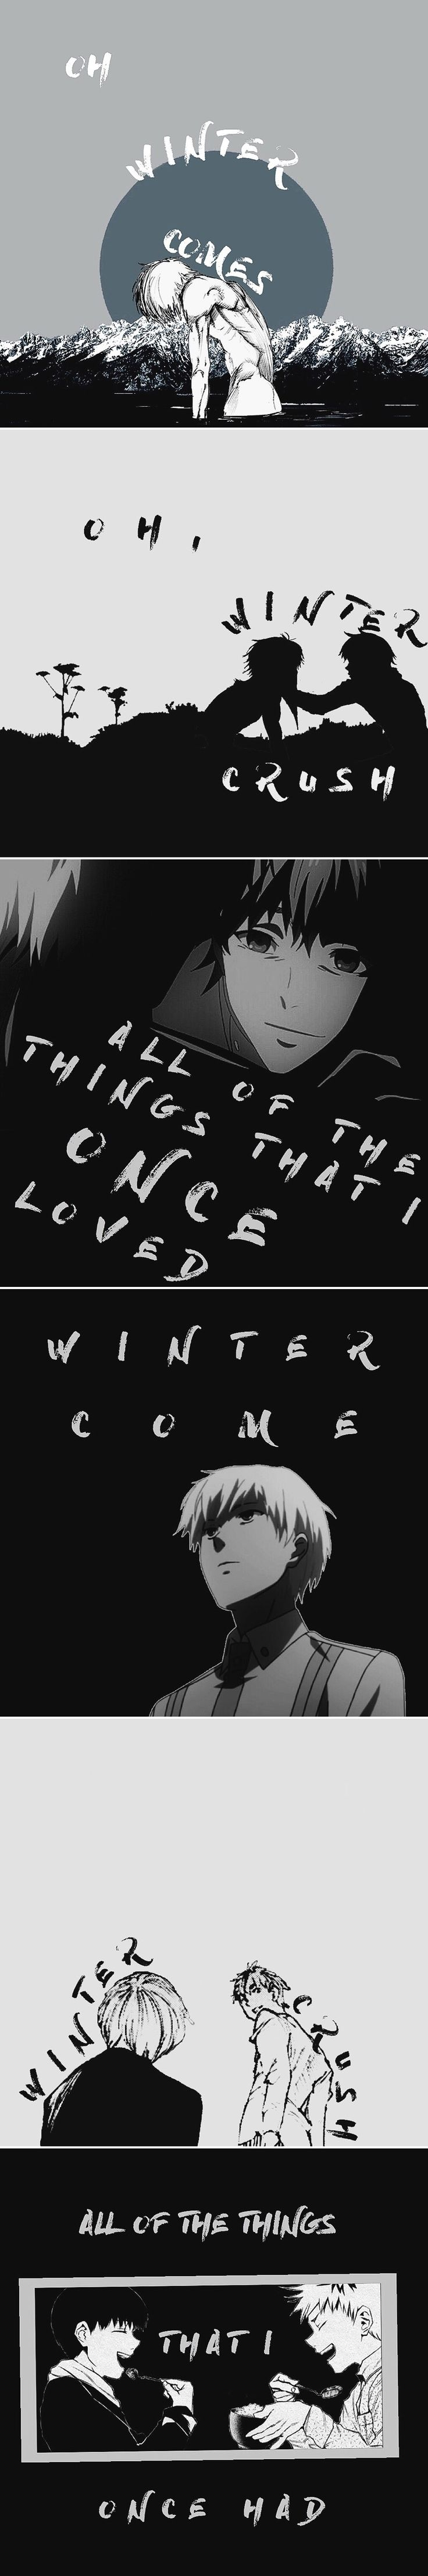 More Tokyo Ghoul feels for you